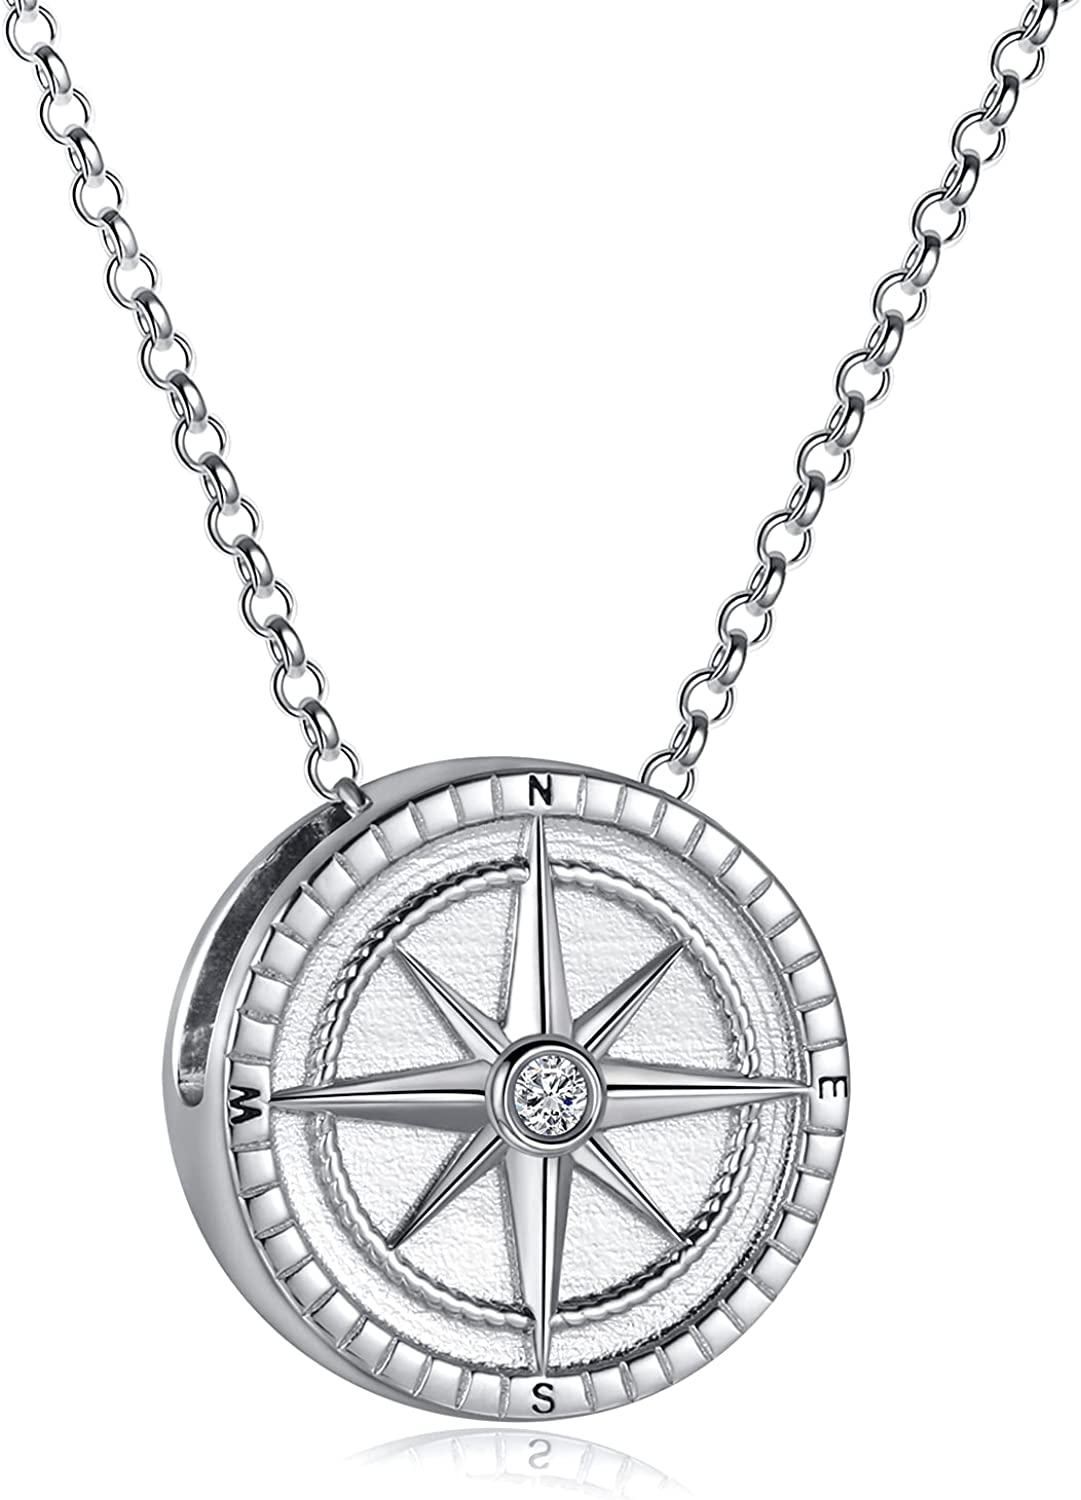 925 Silver Compass Urn Necklaces for Ashes I'D Lost Without You Cremation Jewelry Memorial Keepsake Pendant for Women